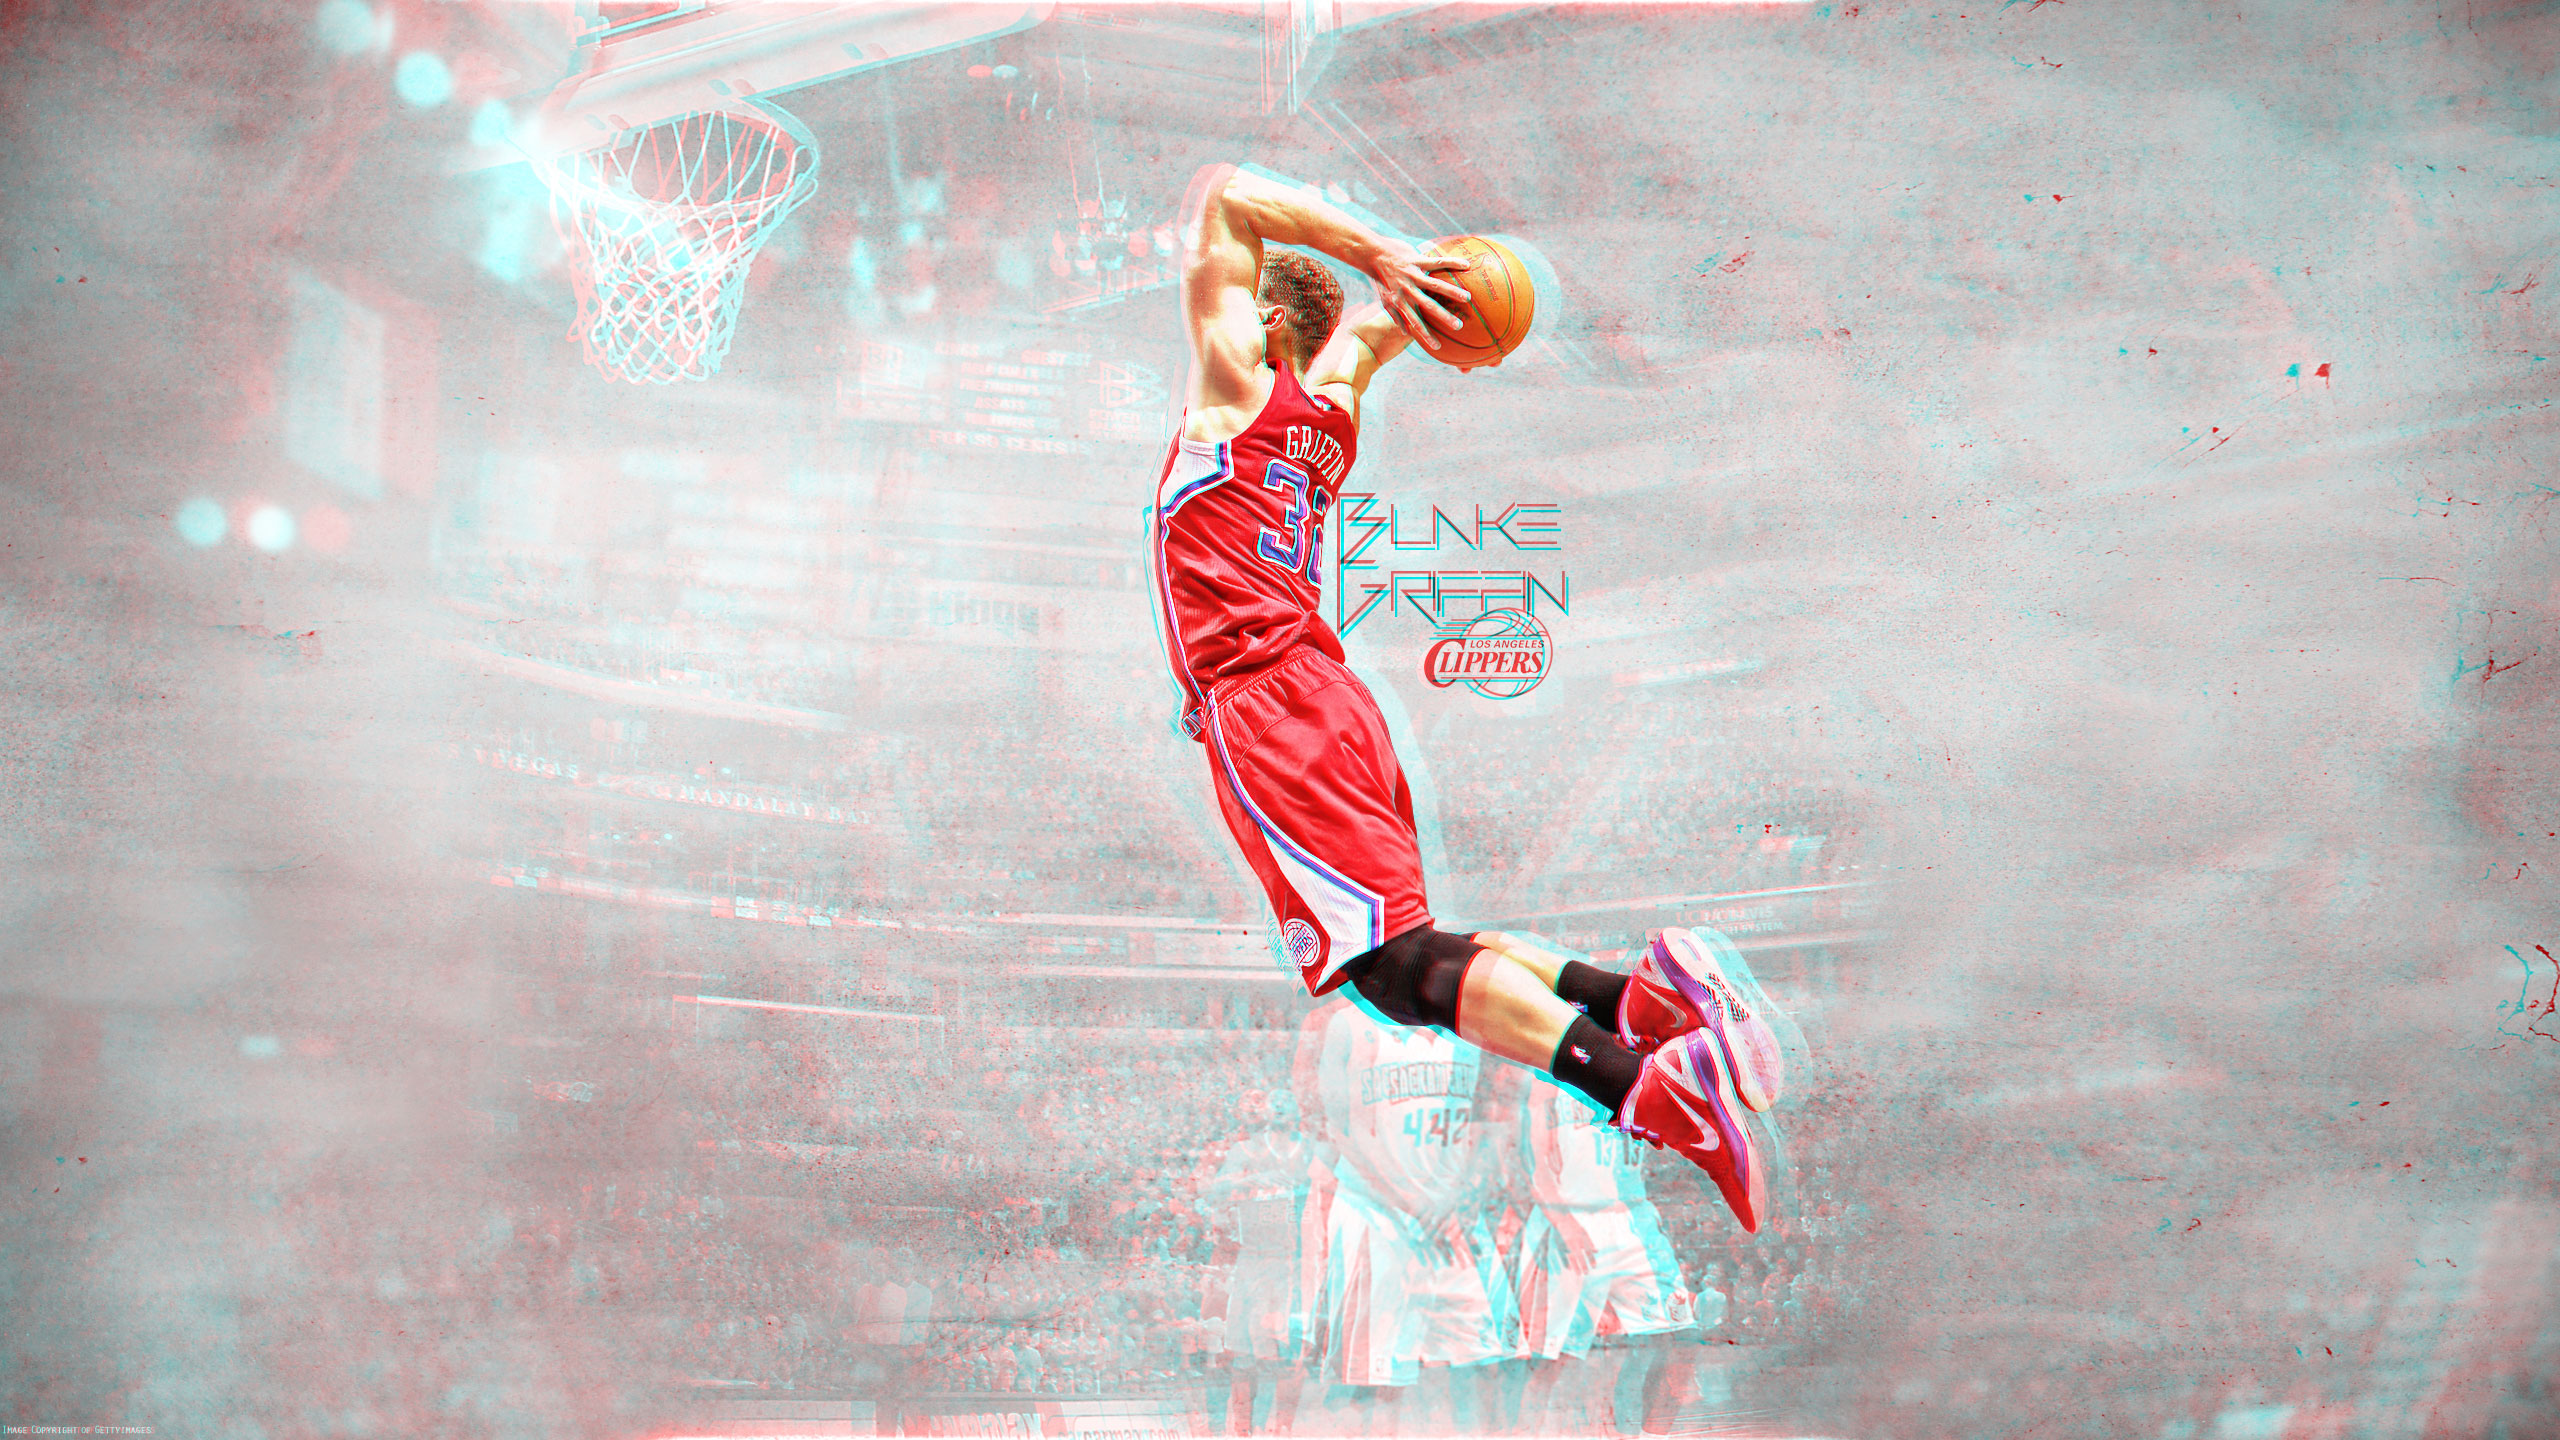 blake griffin wallpaper - photo #1